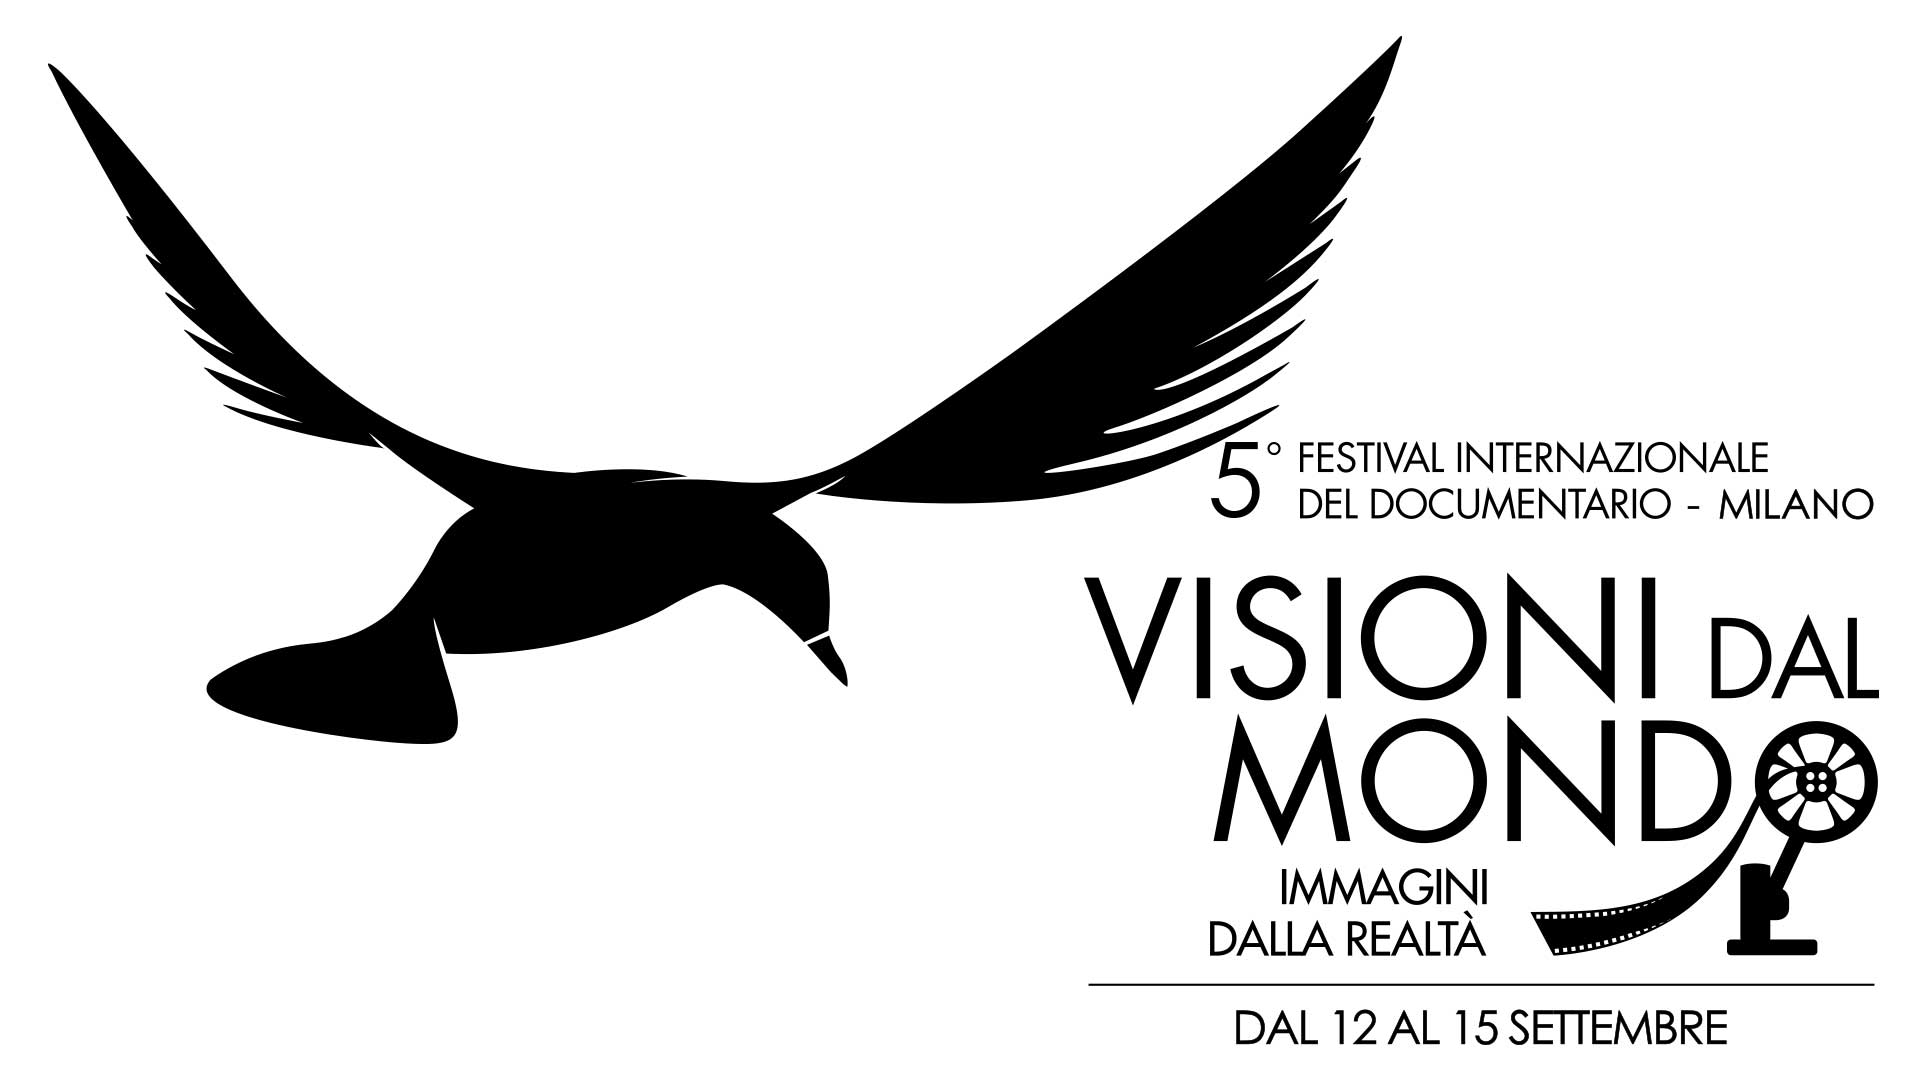 "Confirmed the Media partnership of RAI, RAINews24, RAI Cultura and Rai Radio3, and the support of RAI Cinema  for the 5th edition of The International Documentary Festival ""Visioni dal Mondo, Immagini dalla Realtà"", scheduled in Milan from the 12th to the 15th of September 2019."